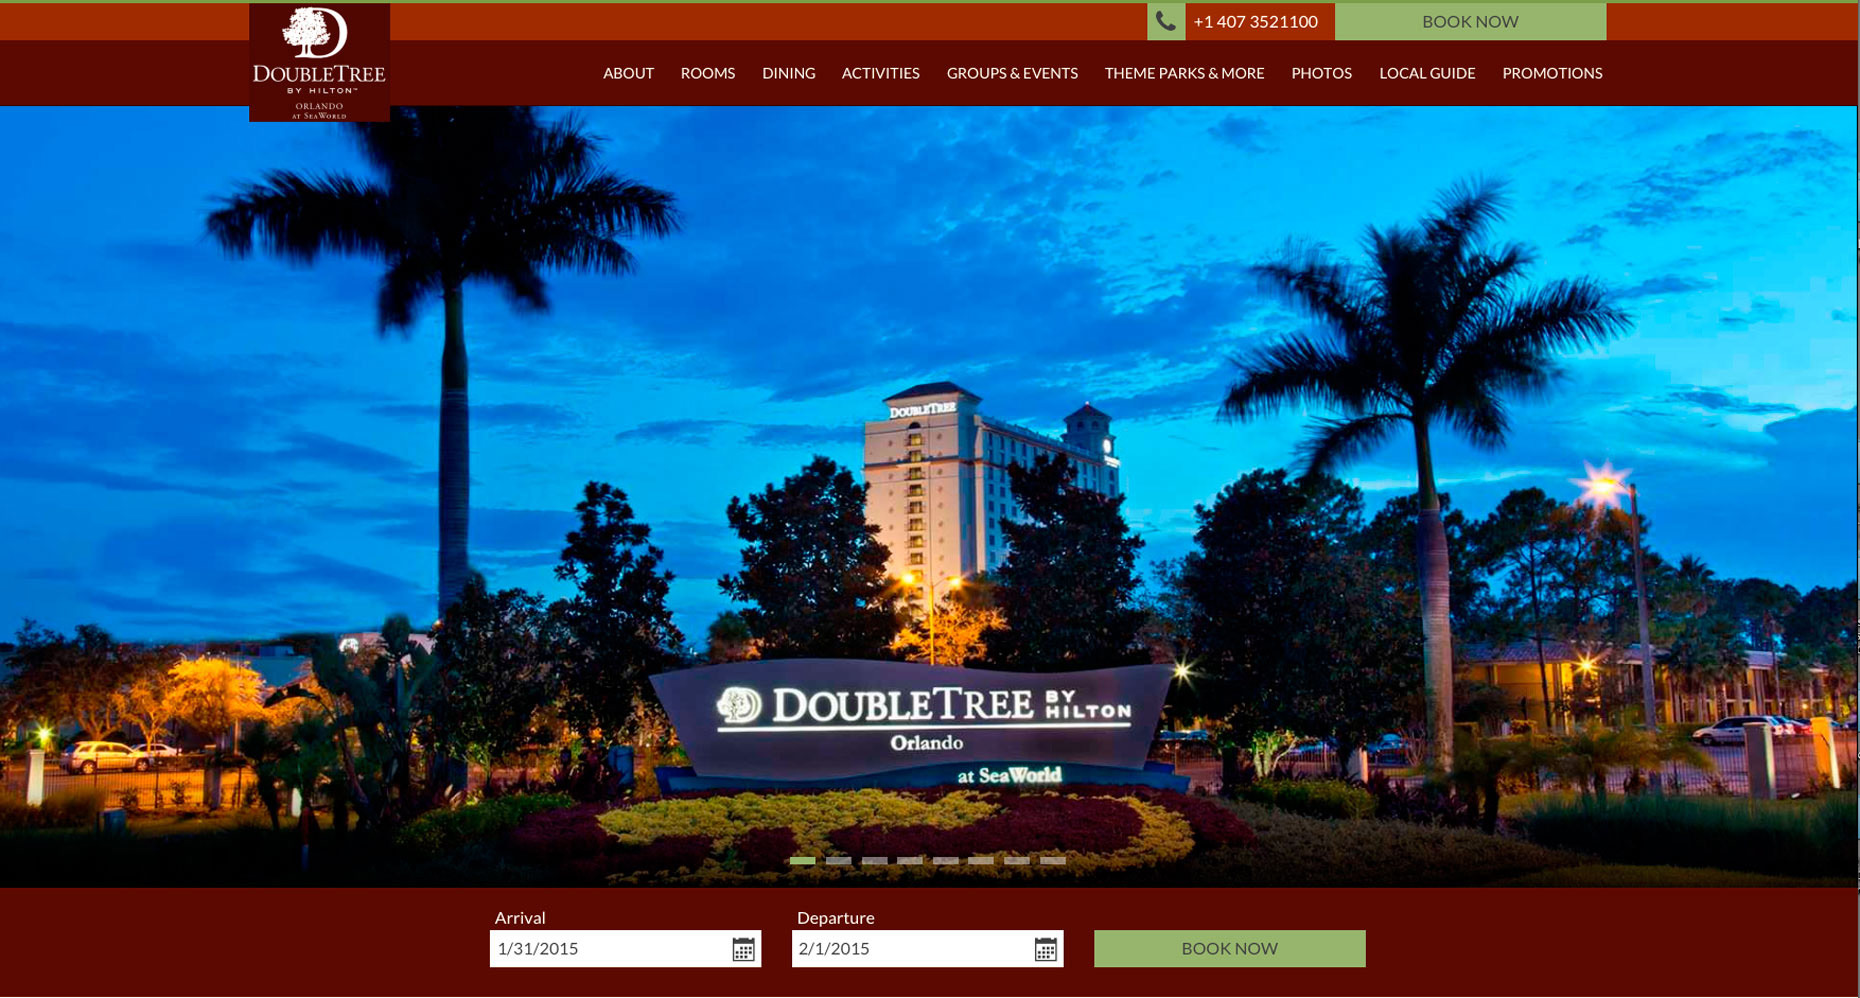 DoubleTree at Sea World Orlando Resort